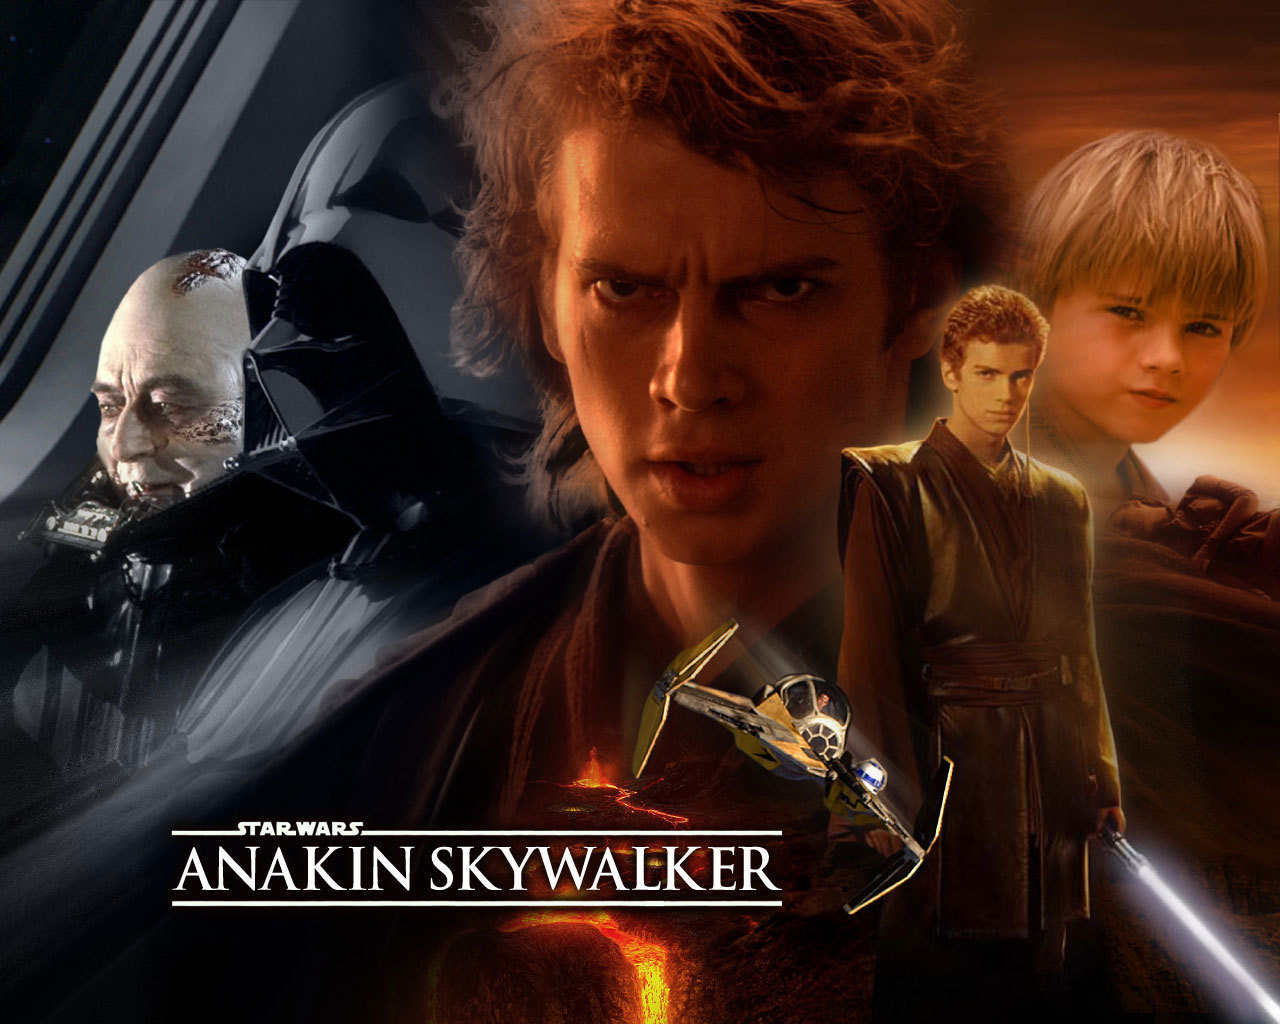 Free Download Star Wars 1280x1024 For Your Desktop Mobile